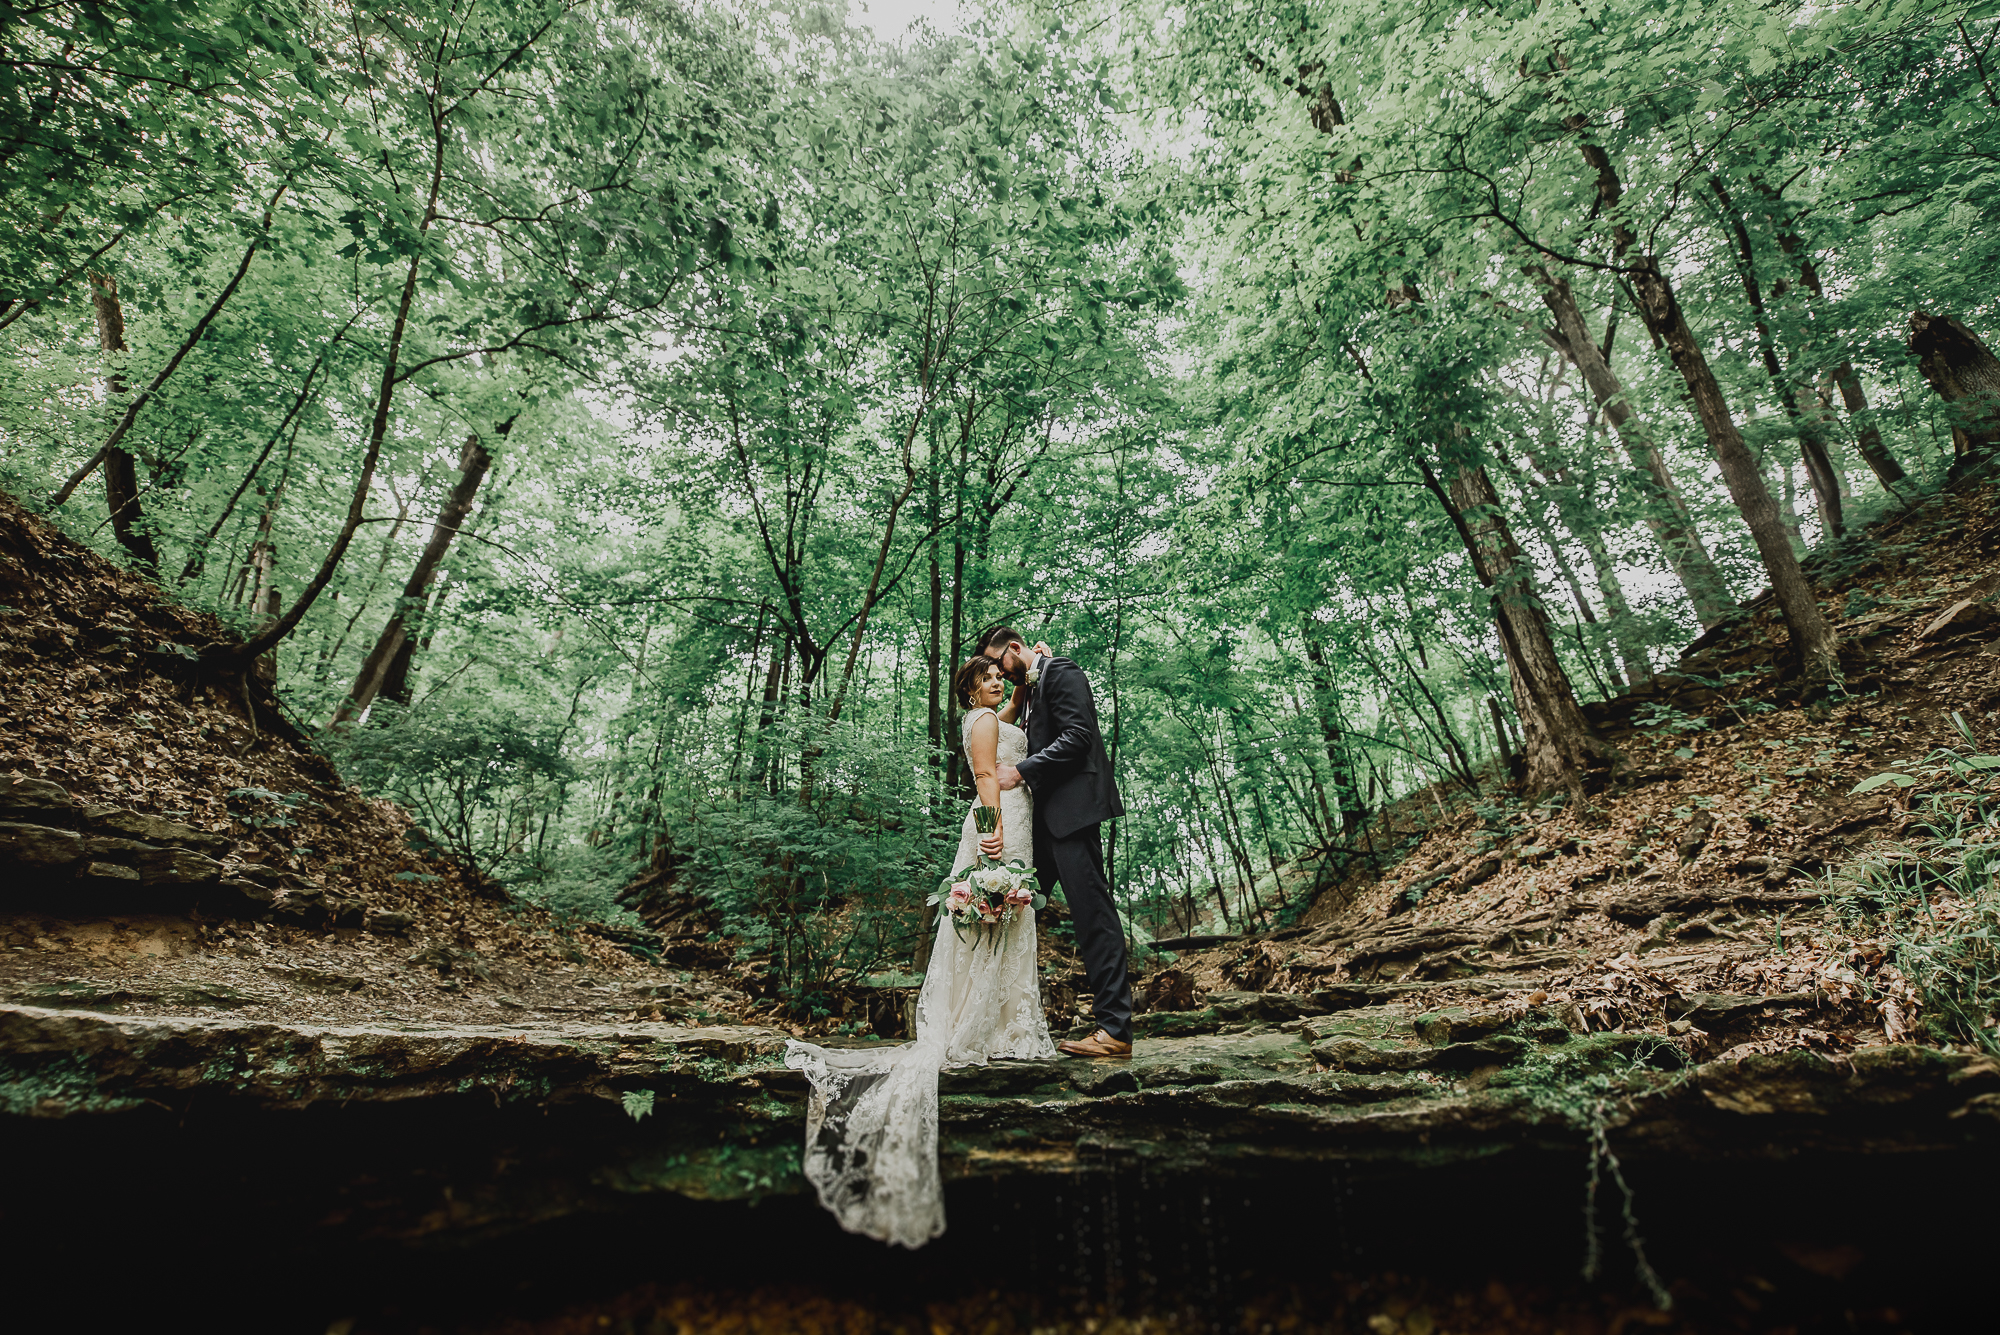 Melissa Cervantes Photography _ Kelsey + Ben Junebug Weddings Submission-75.jpg